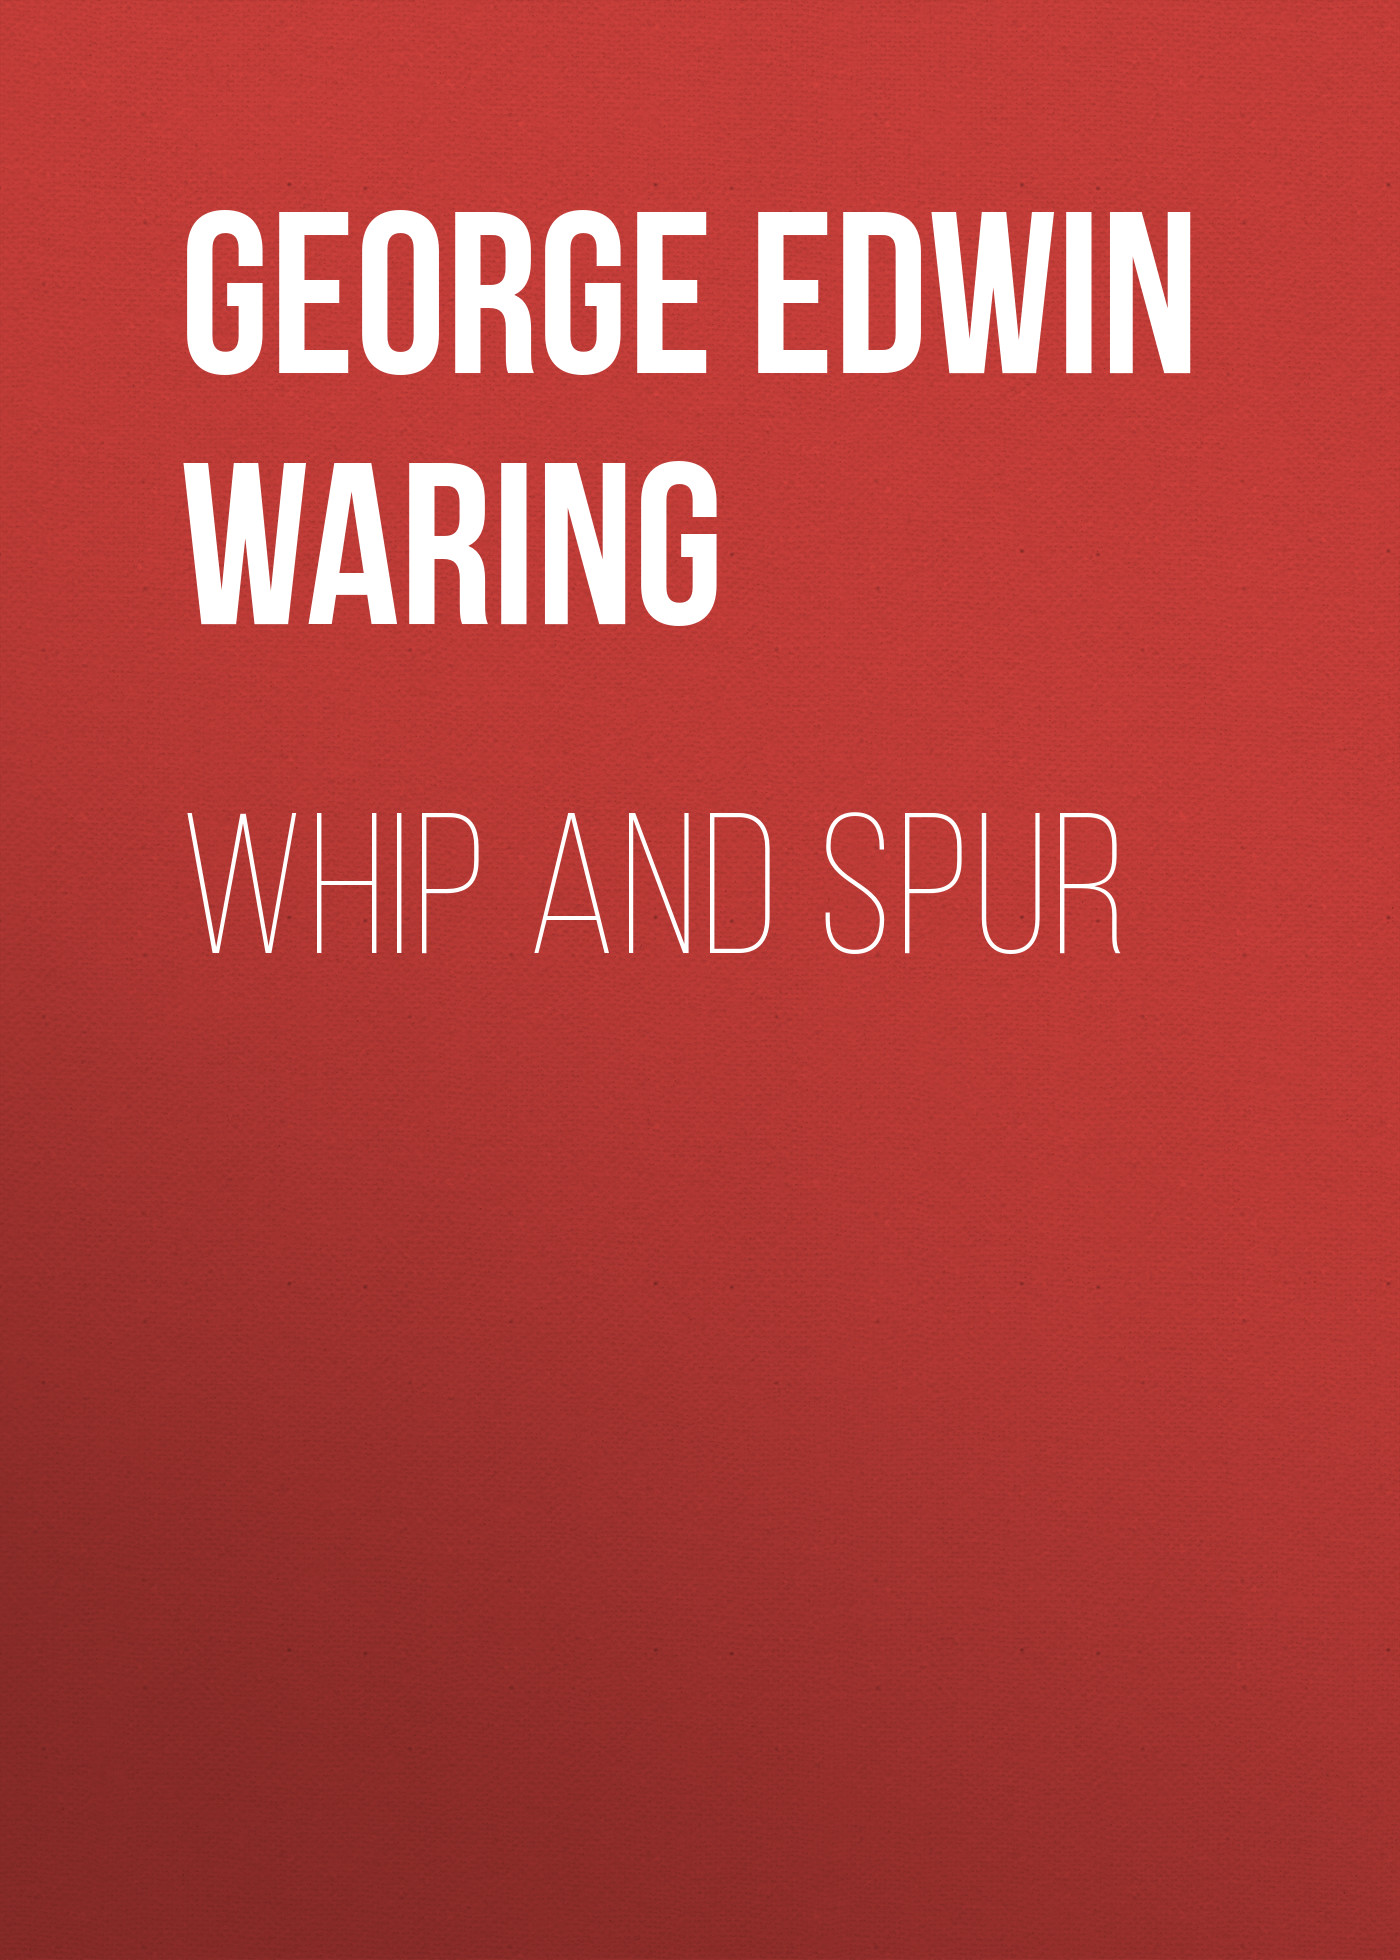 George Edwin Waring Whip and Spur ботинки der spur der spur de034amwiz42